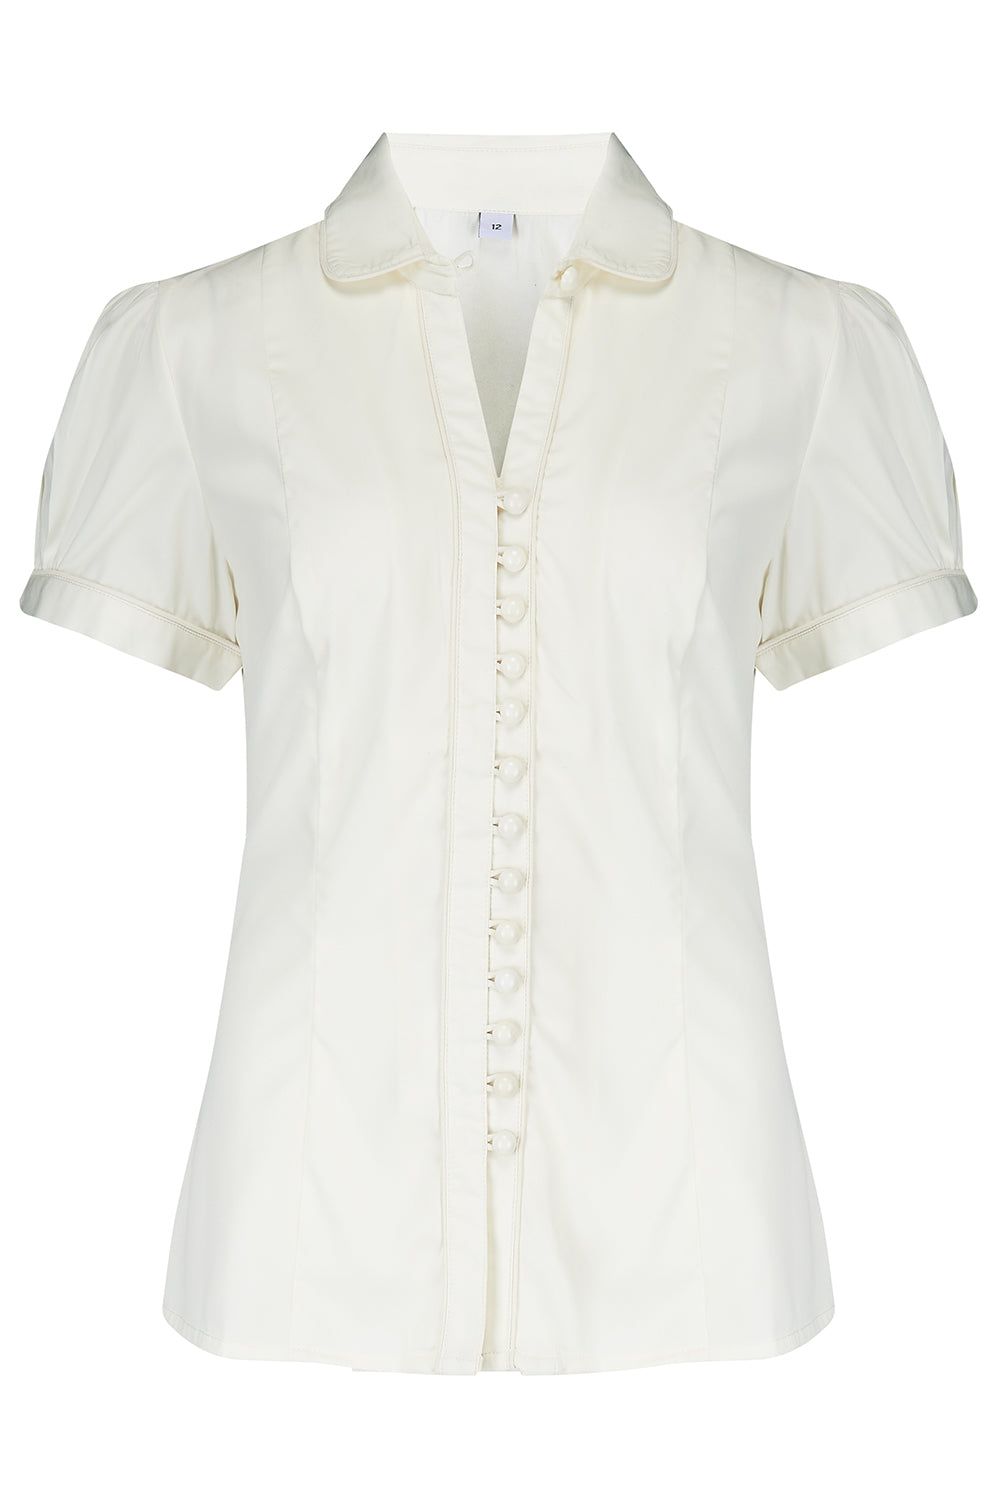 1940s Blouses, Tops, Shirts, Knitwear The Margot Blouse in Antique White True  Classic Easy To Wear Vintage Style £29.00 AT vintagedancer.com